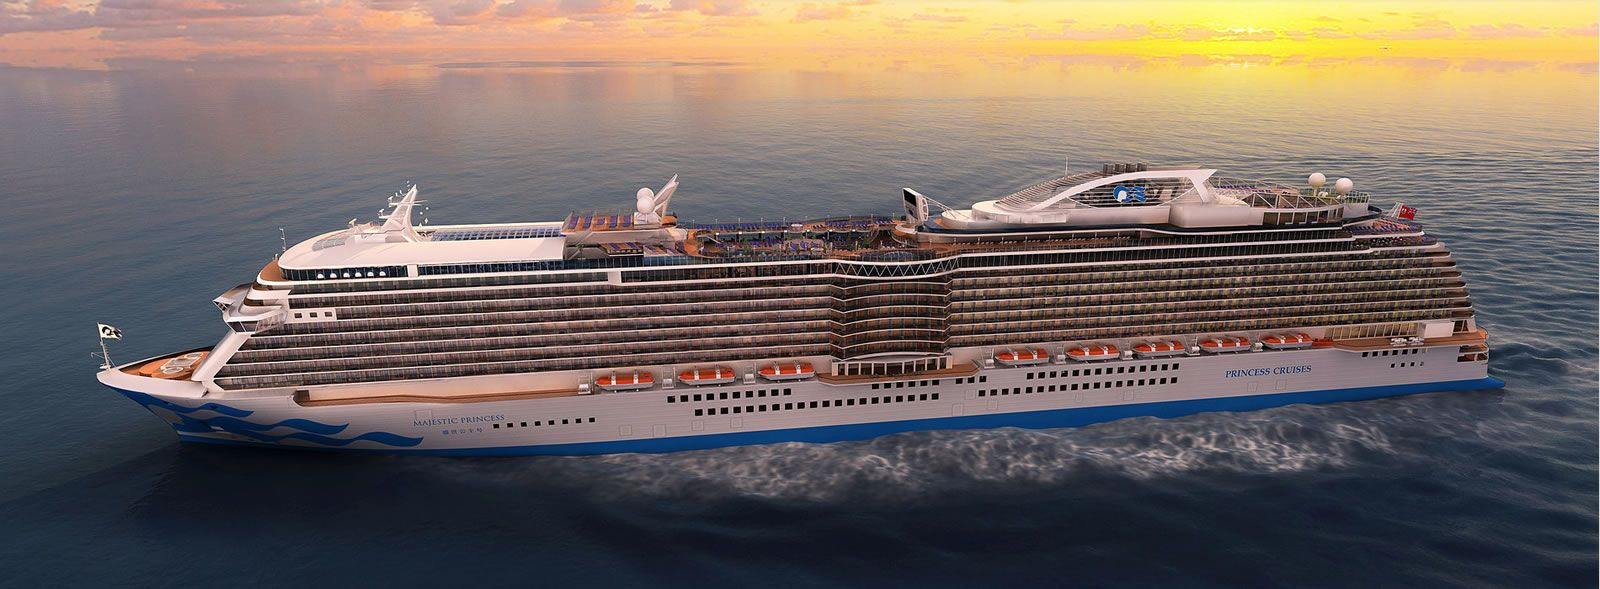 princess cruise case study A cruise ship or cruise liner is a  the beginning and end of each cruise, for the royal princess  the needs of visiting cruise ships in one case,.